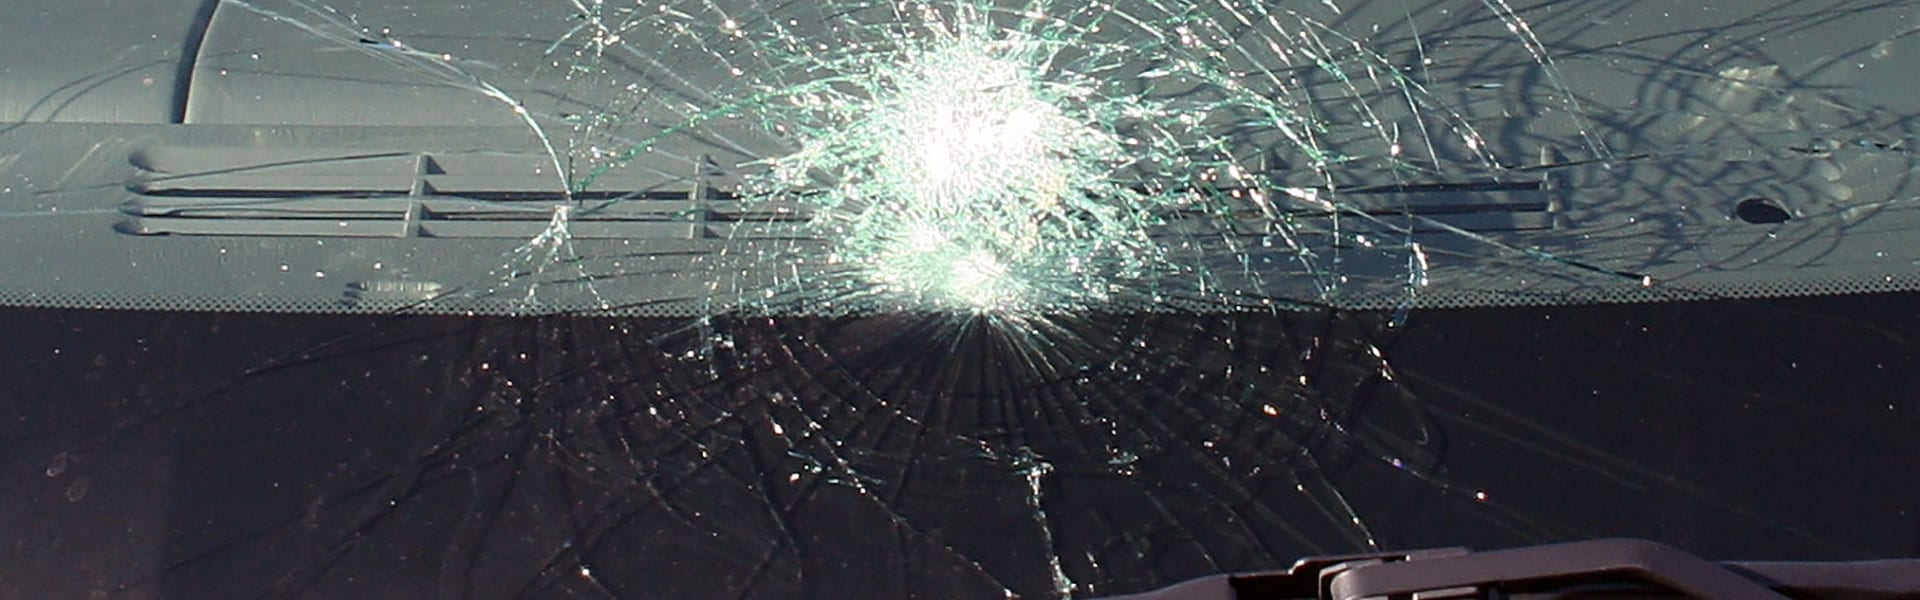 Pacific Auto Glass: Windshield Replacement Services in Mesa, Arizona